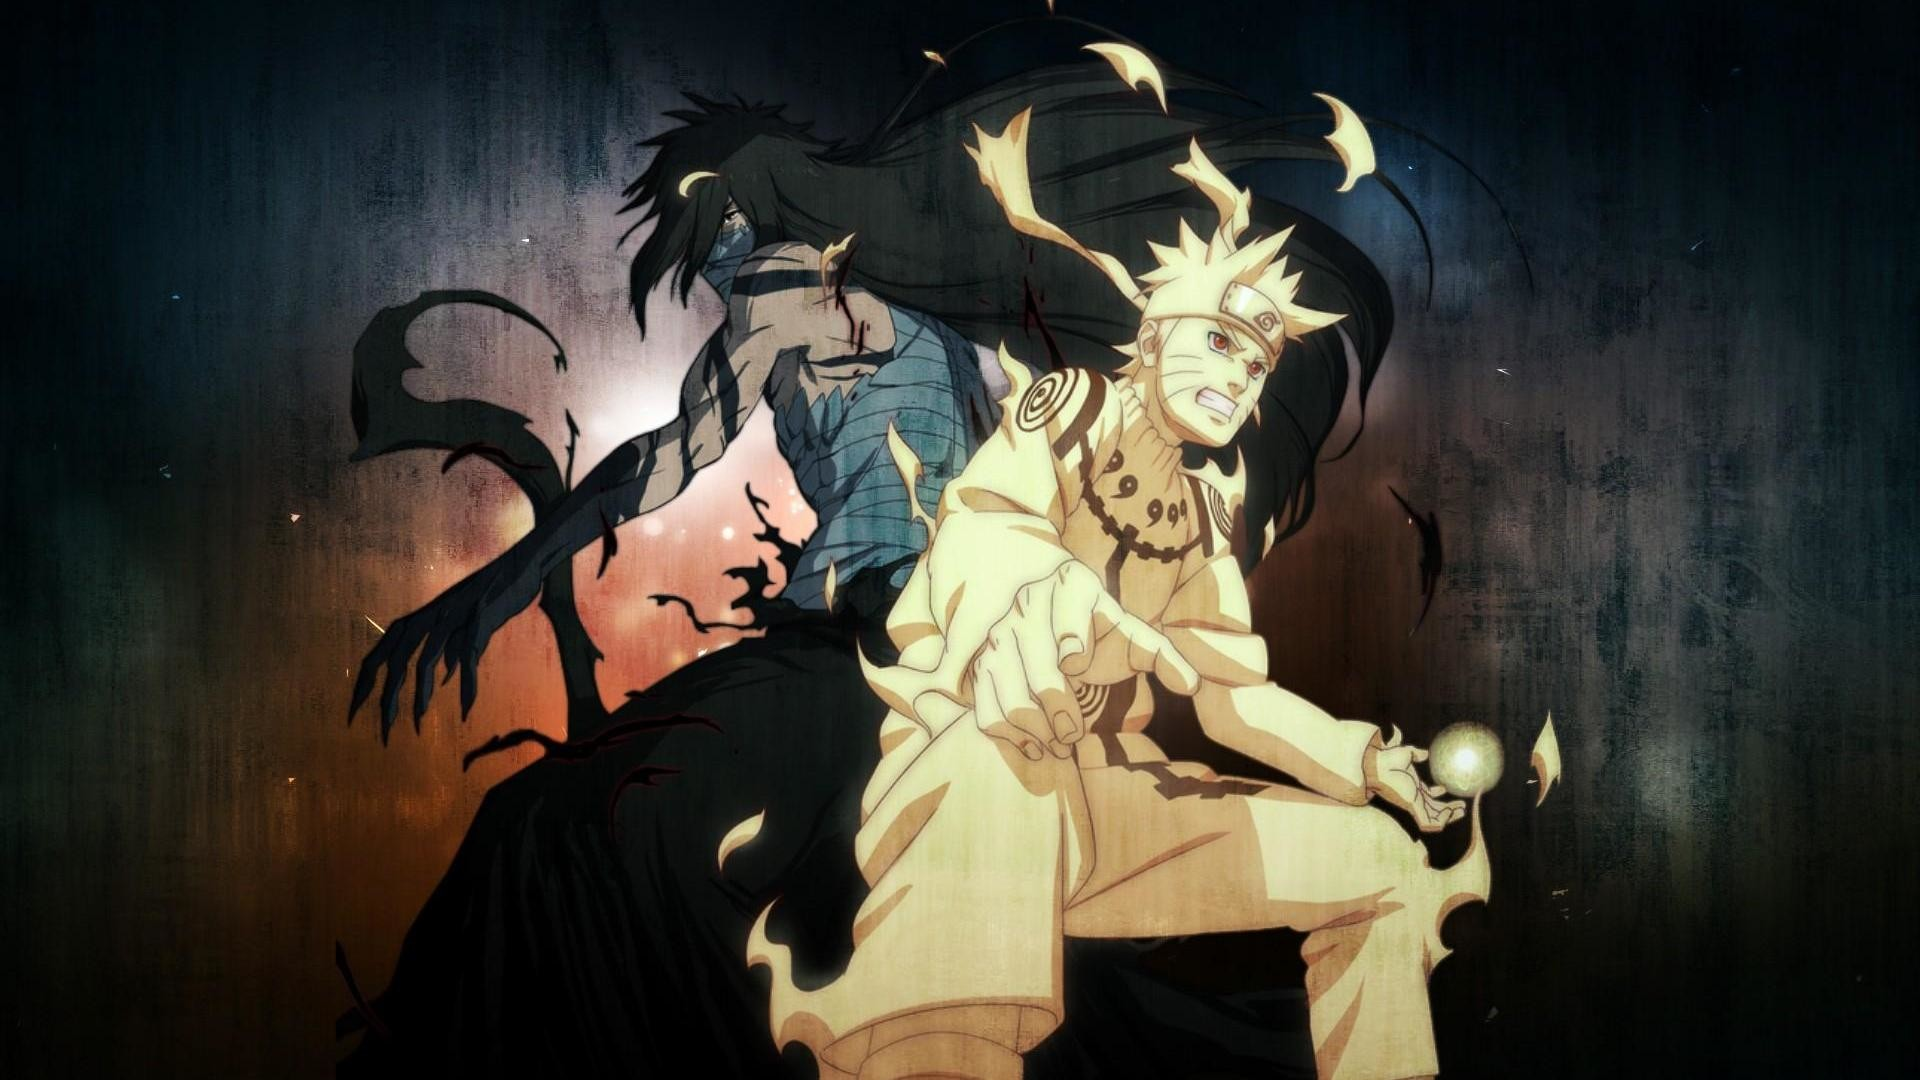 815248 large naruto 1080p wallpaper 1920x1080 for full hd